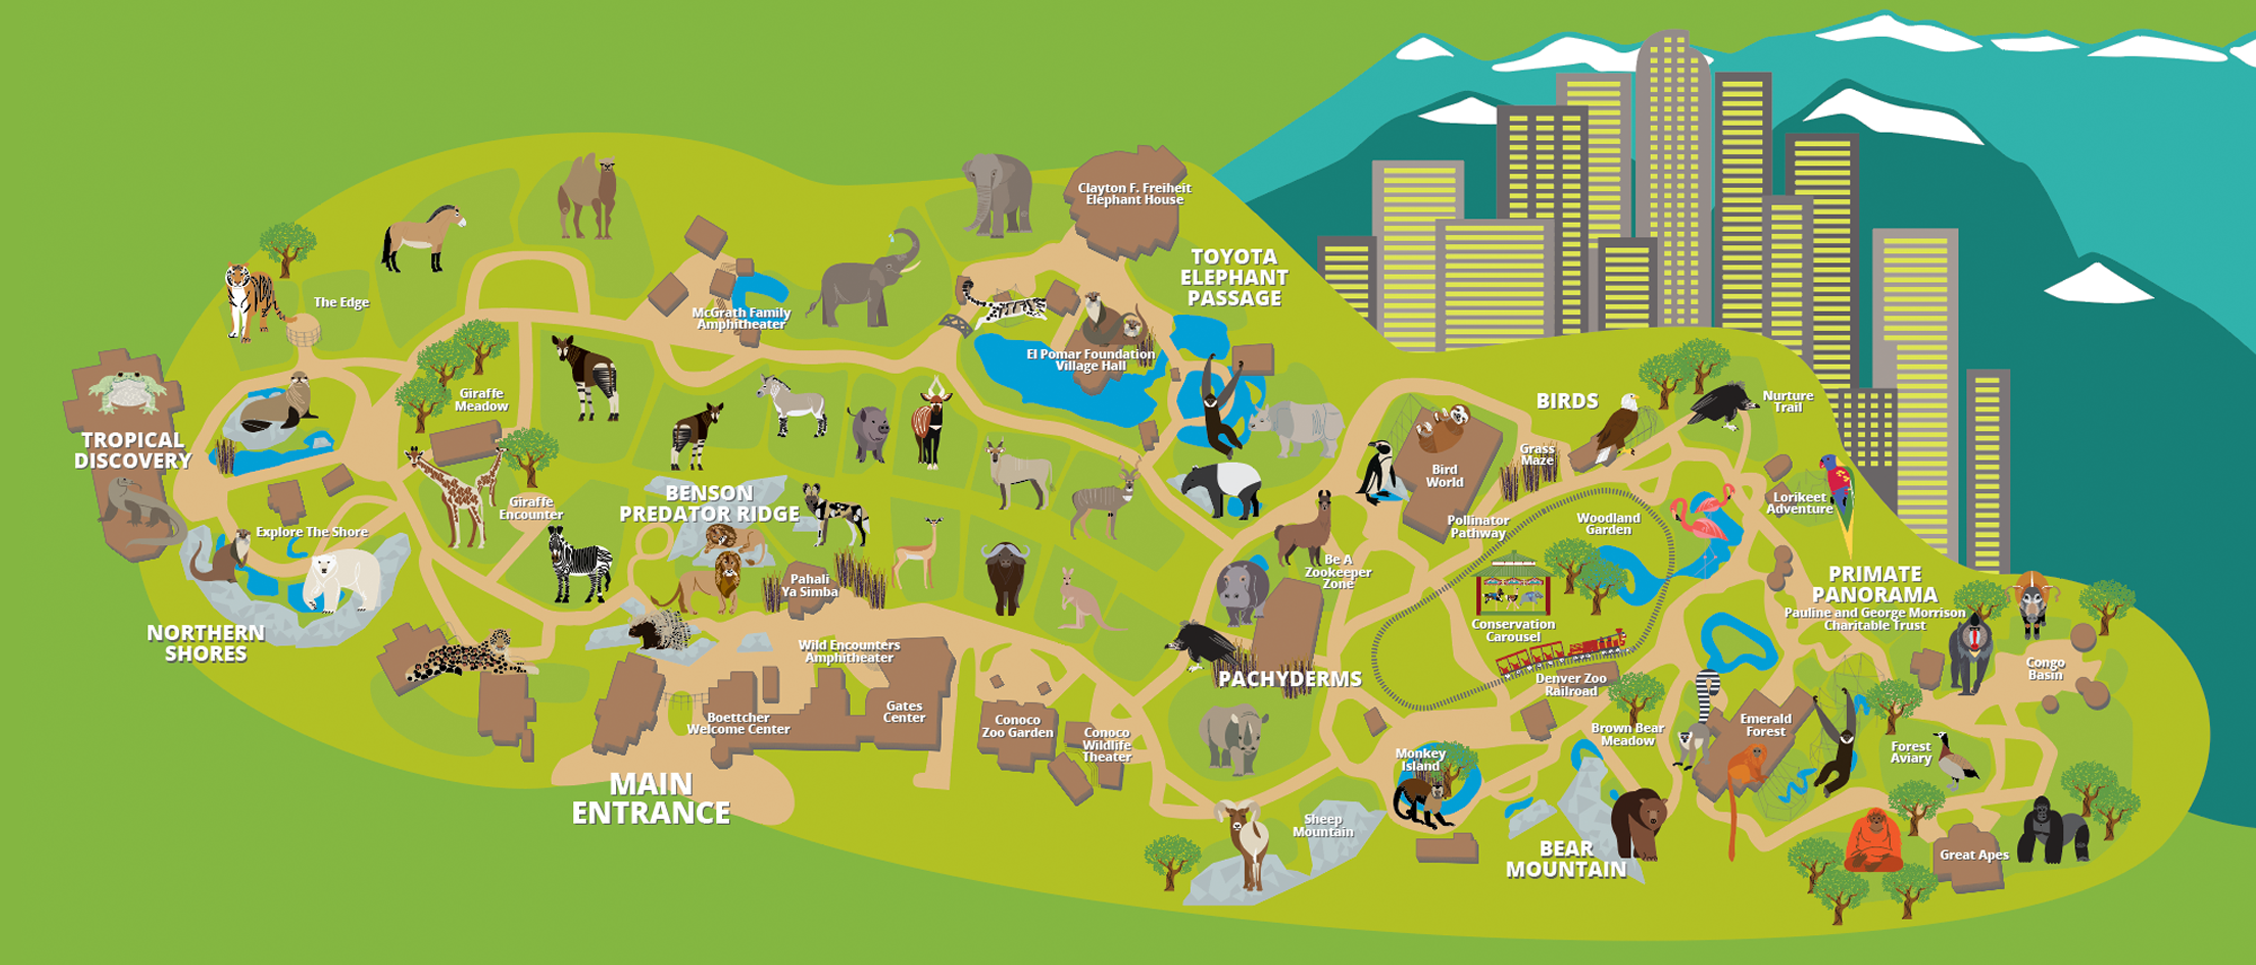 Denver Zoo Map Denver Zoo Family pass | LIAM'S WISH LIST ;) | Denver zoo, Zoo map